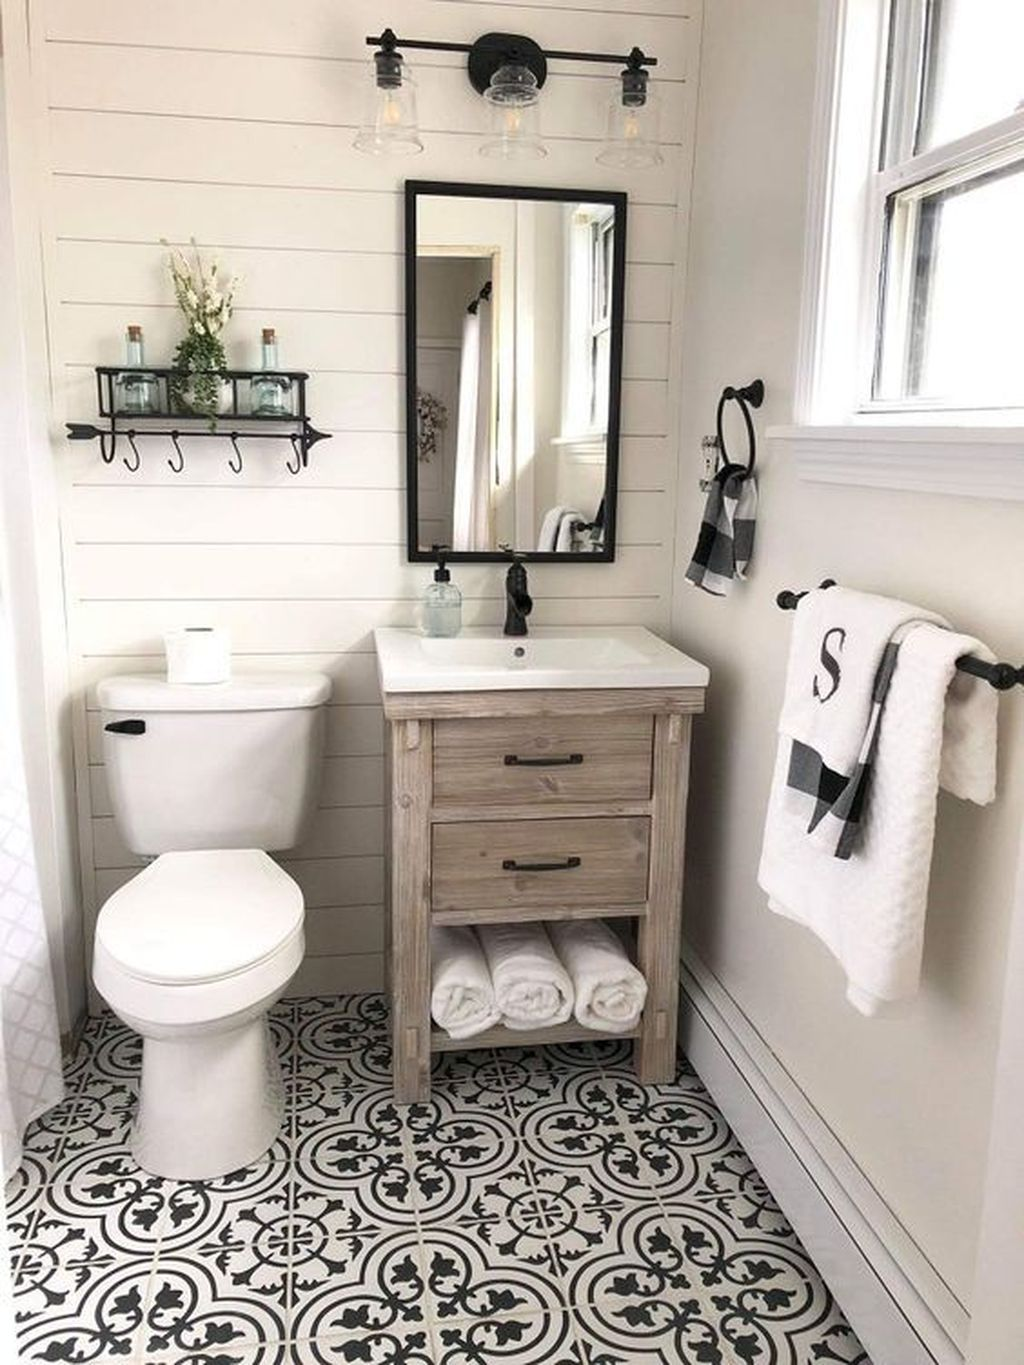 34 Inspiring Bathroom Decorations You Never Seen Before In 2020 Bathroom Farmhouse Style Small Farmhouse Bathroom Small Bathroom